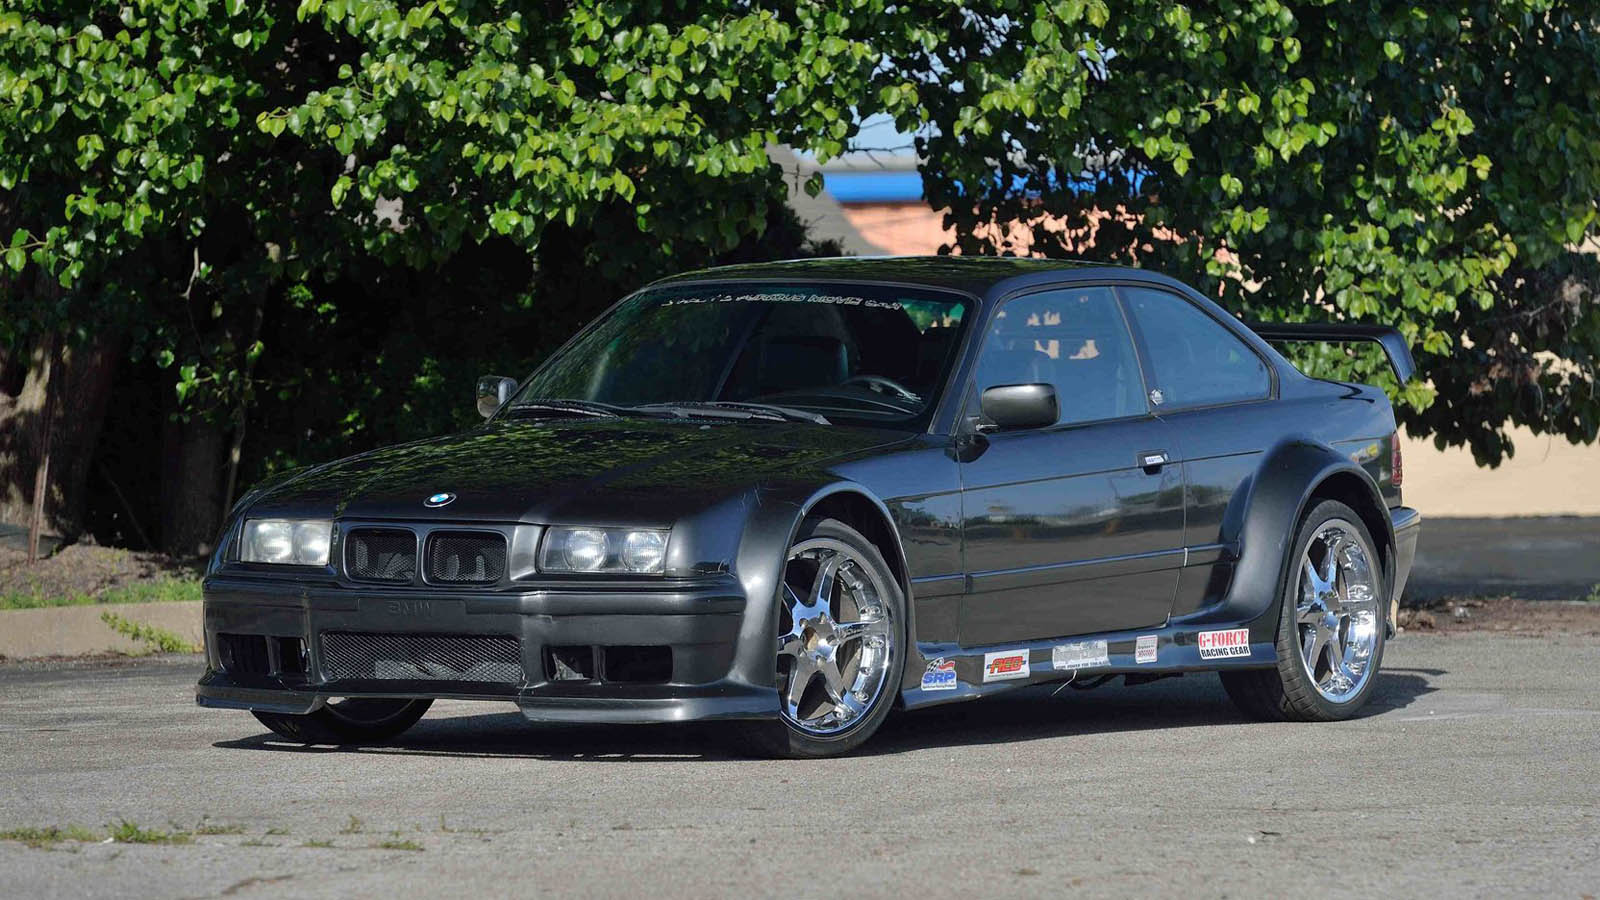 BMW 323i From 2 Fast Furious Failed To Sell At Auction